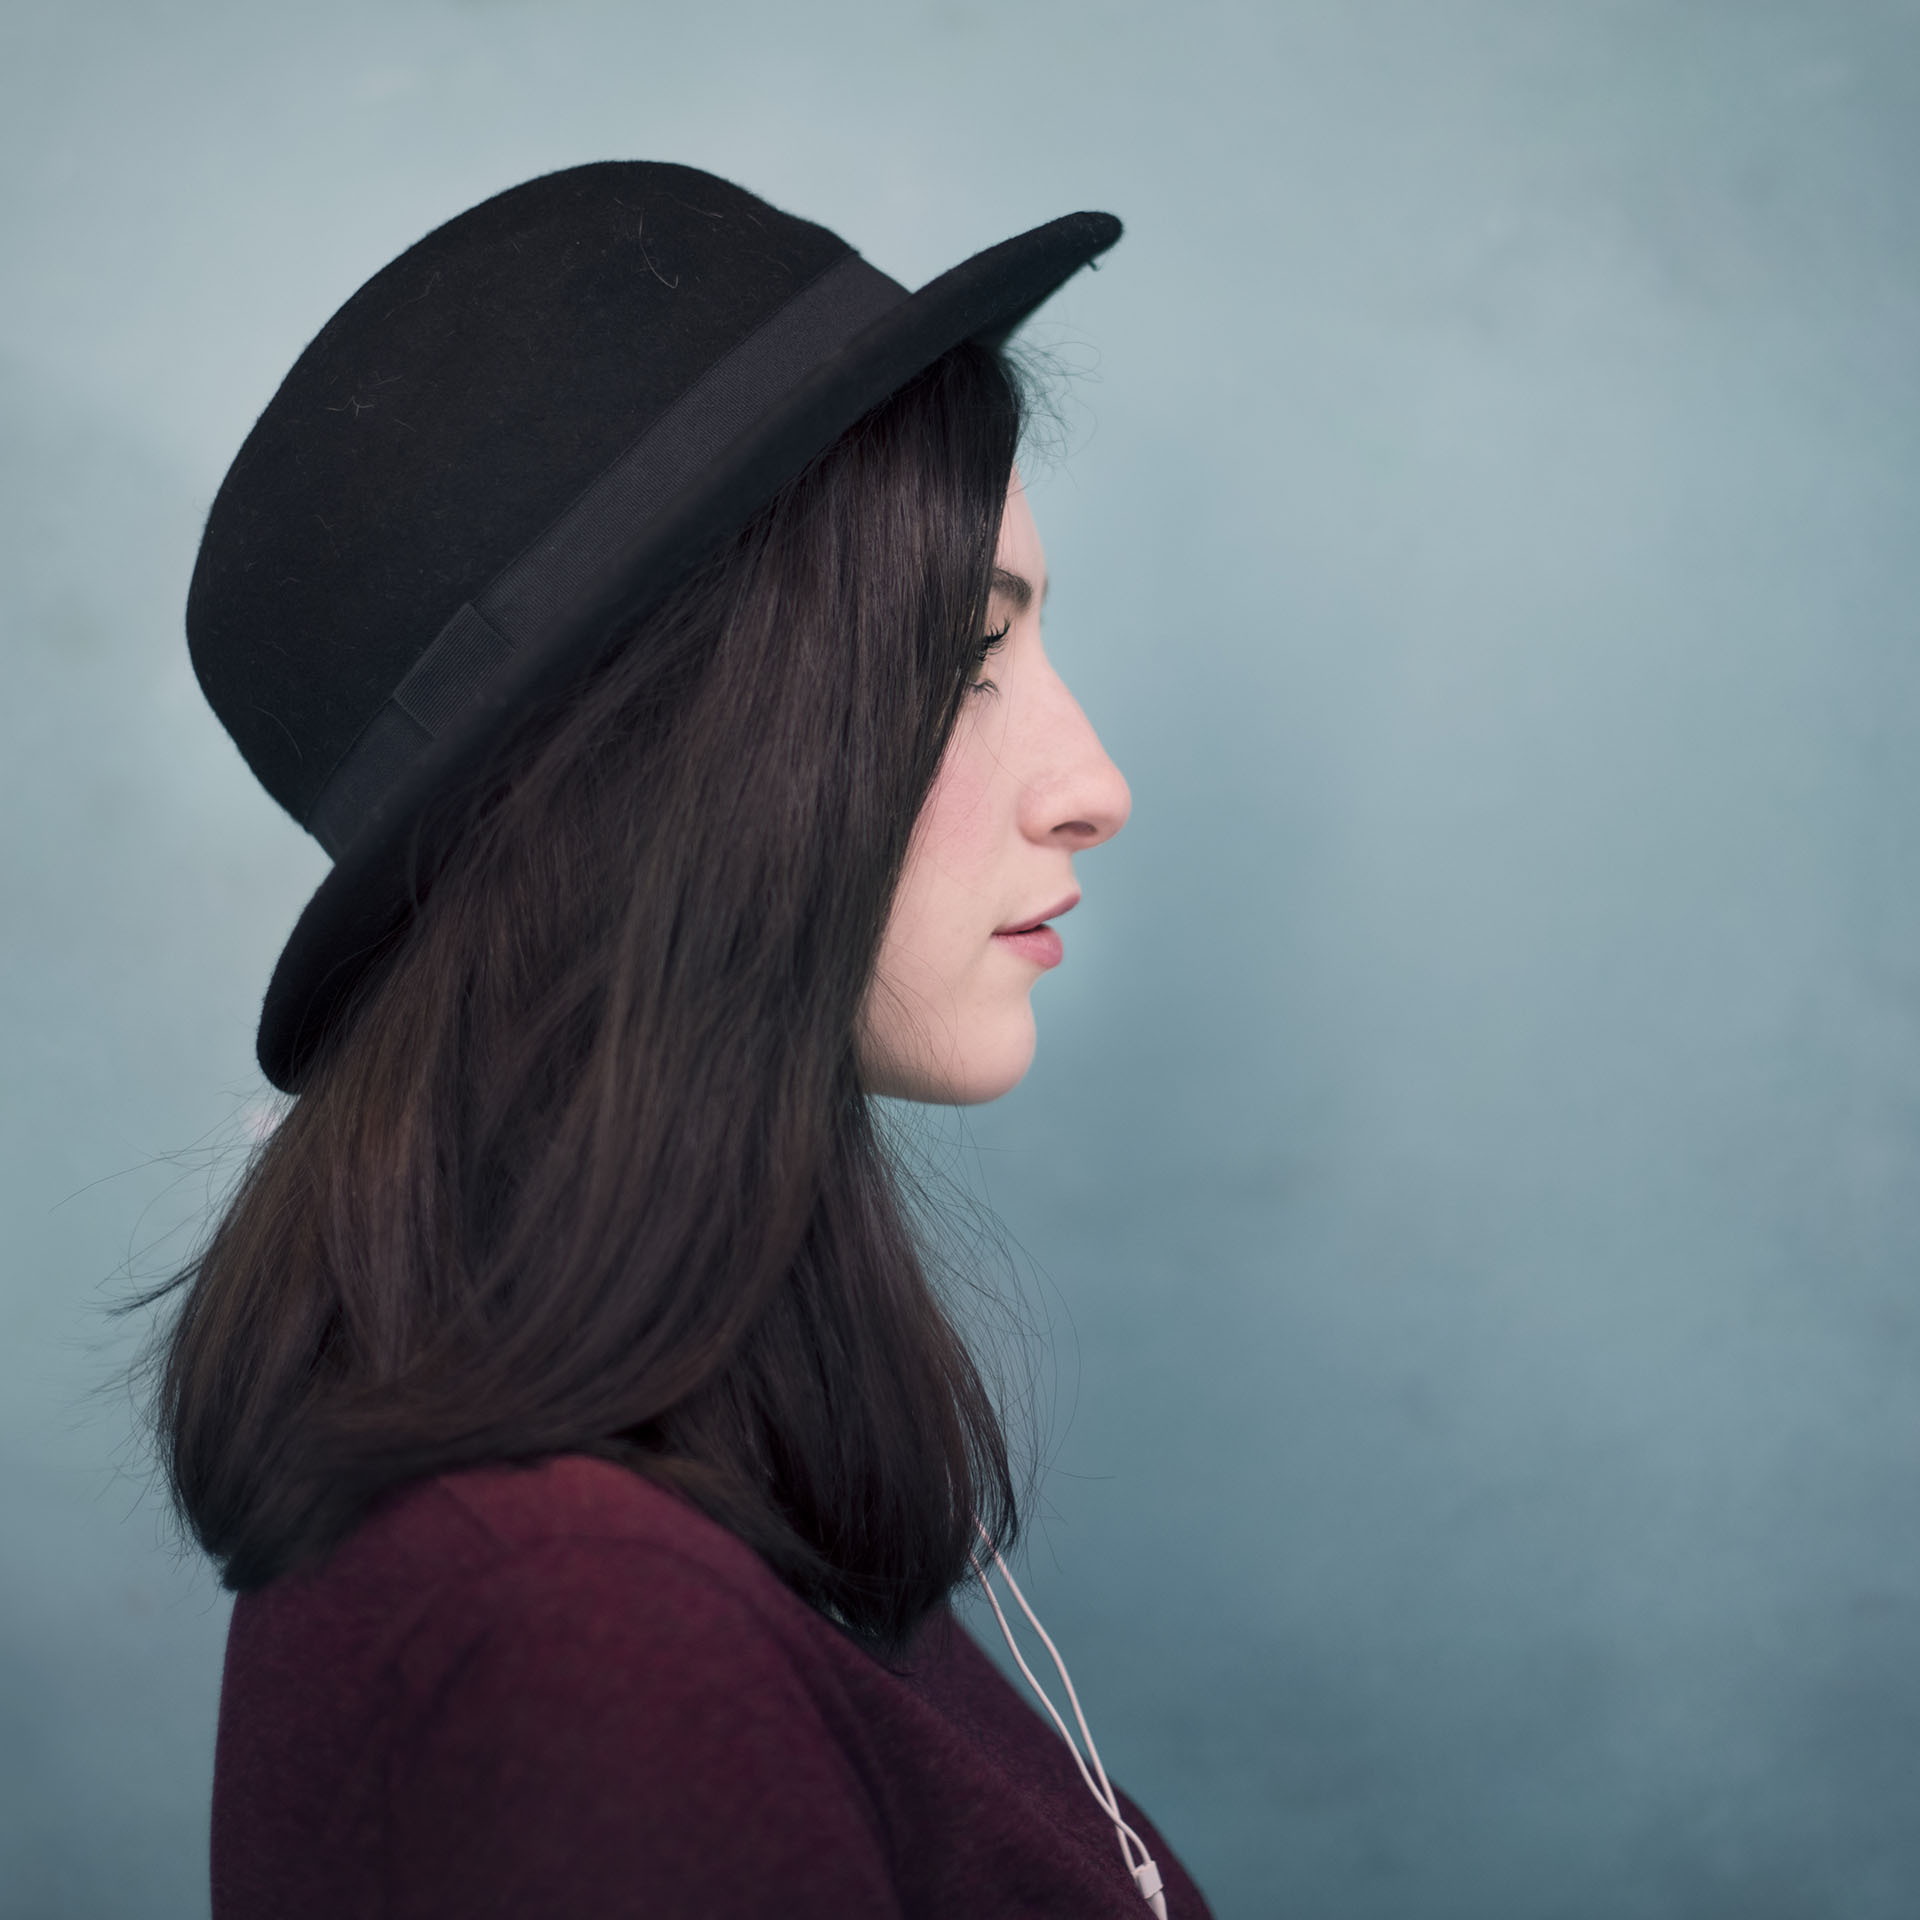 profile, brunette lady in purple shirt and black hat